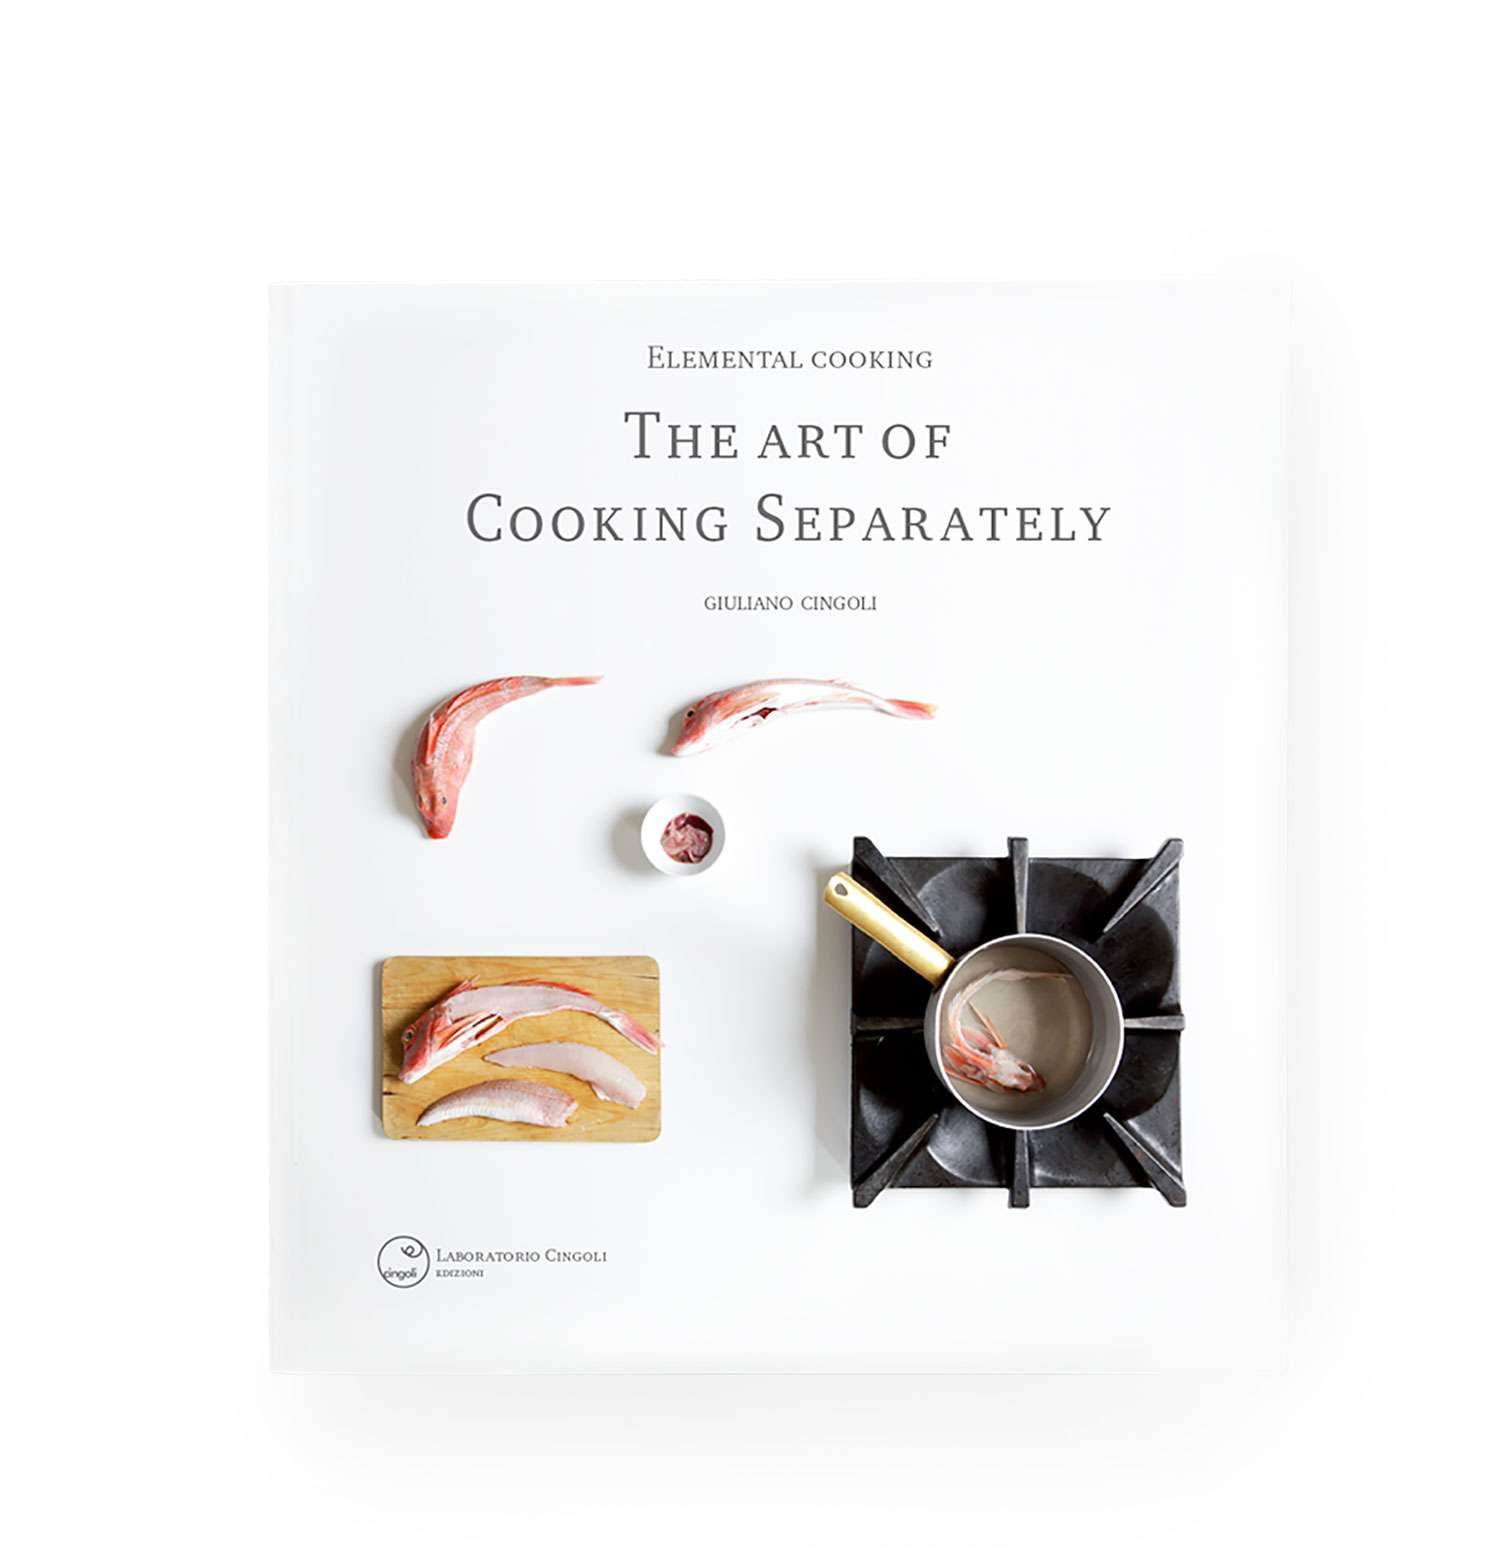 Book elemental cooking the art of cooking separately | Giuliano Cingoli